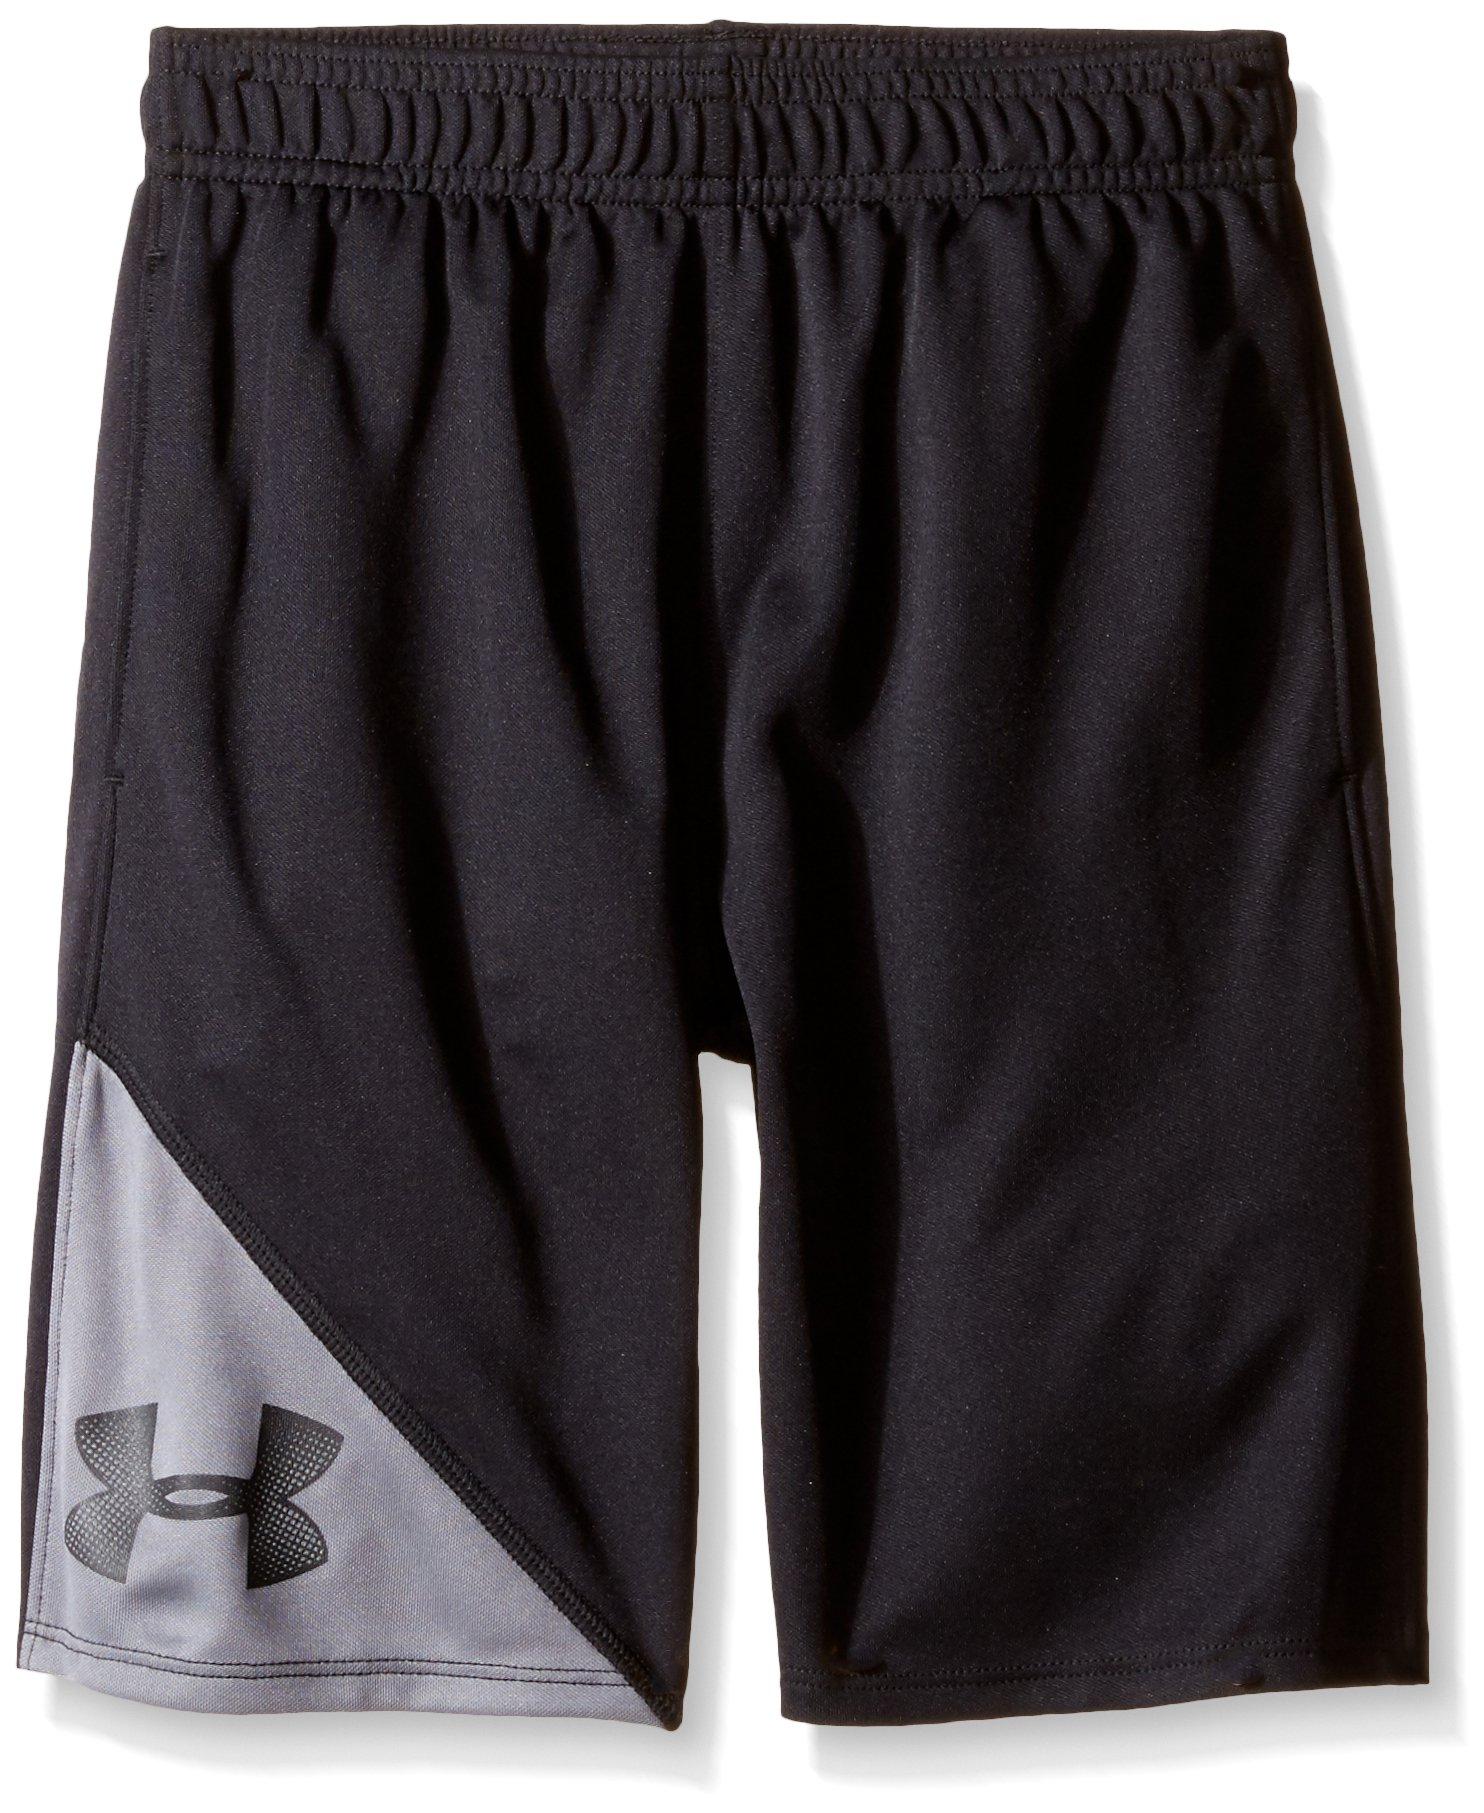 Under Armour Little Boys' Prototype Short, Black, 6